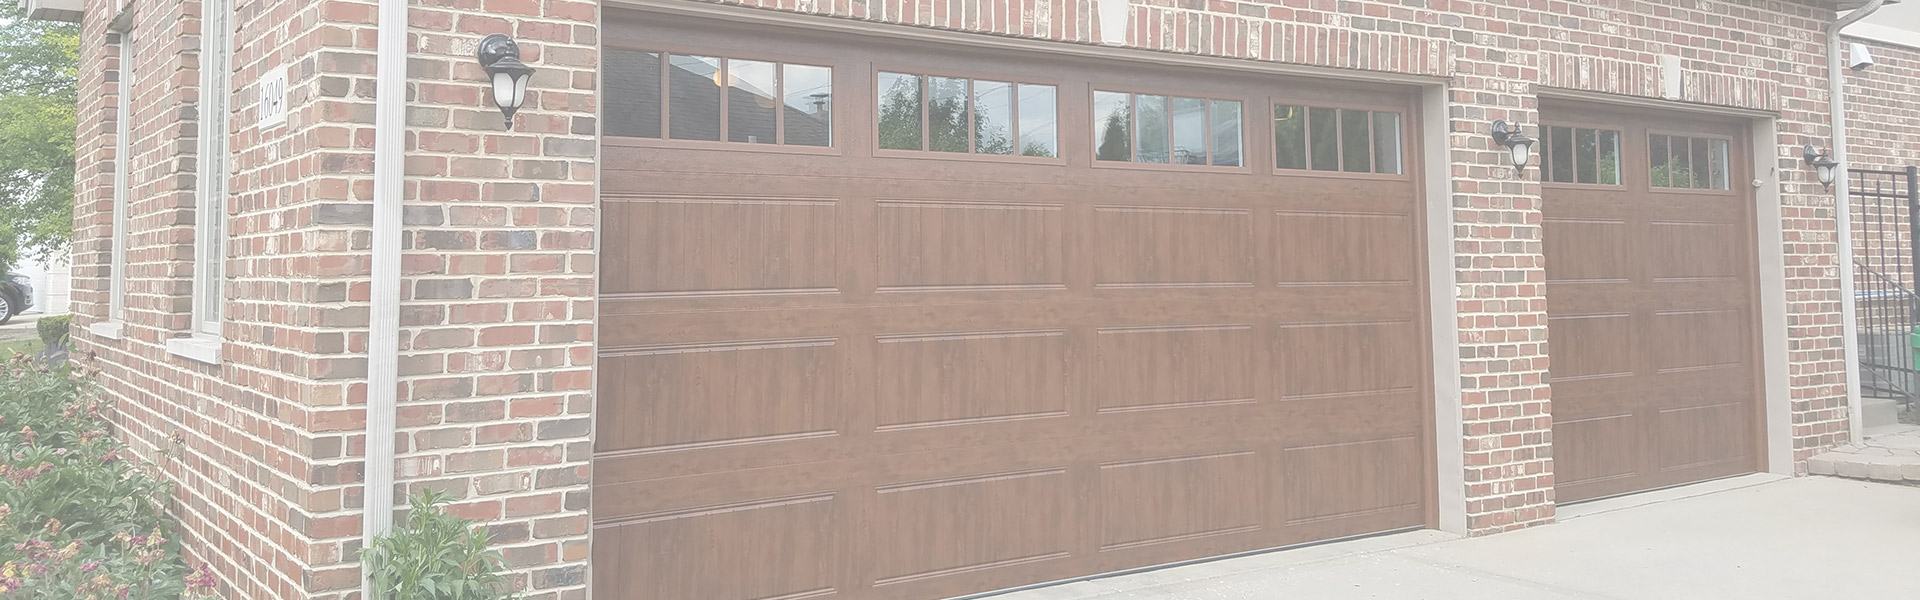 company upgrade results see before out check resized photos garage and news after overhead work these albuquerque insulated of door from great